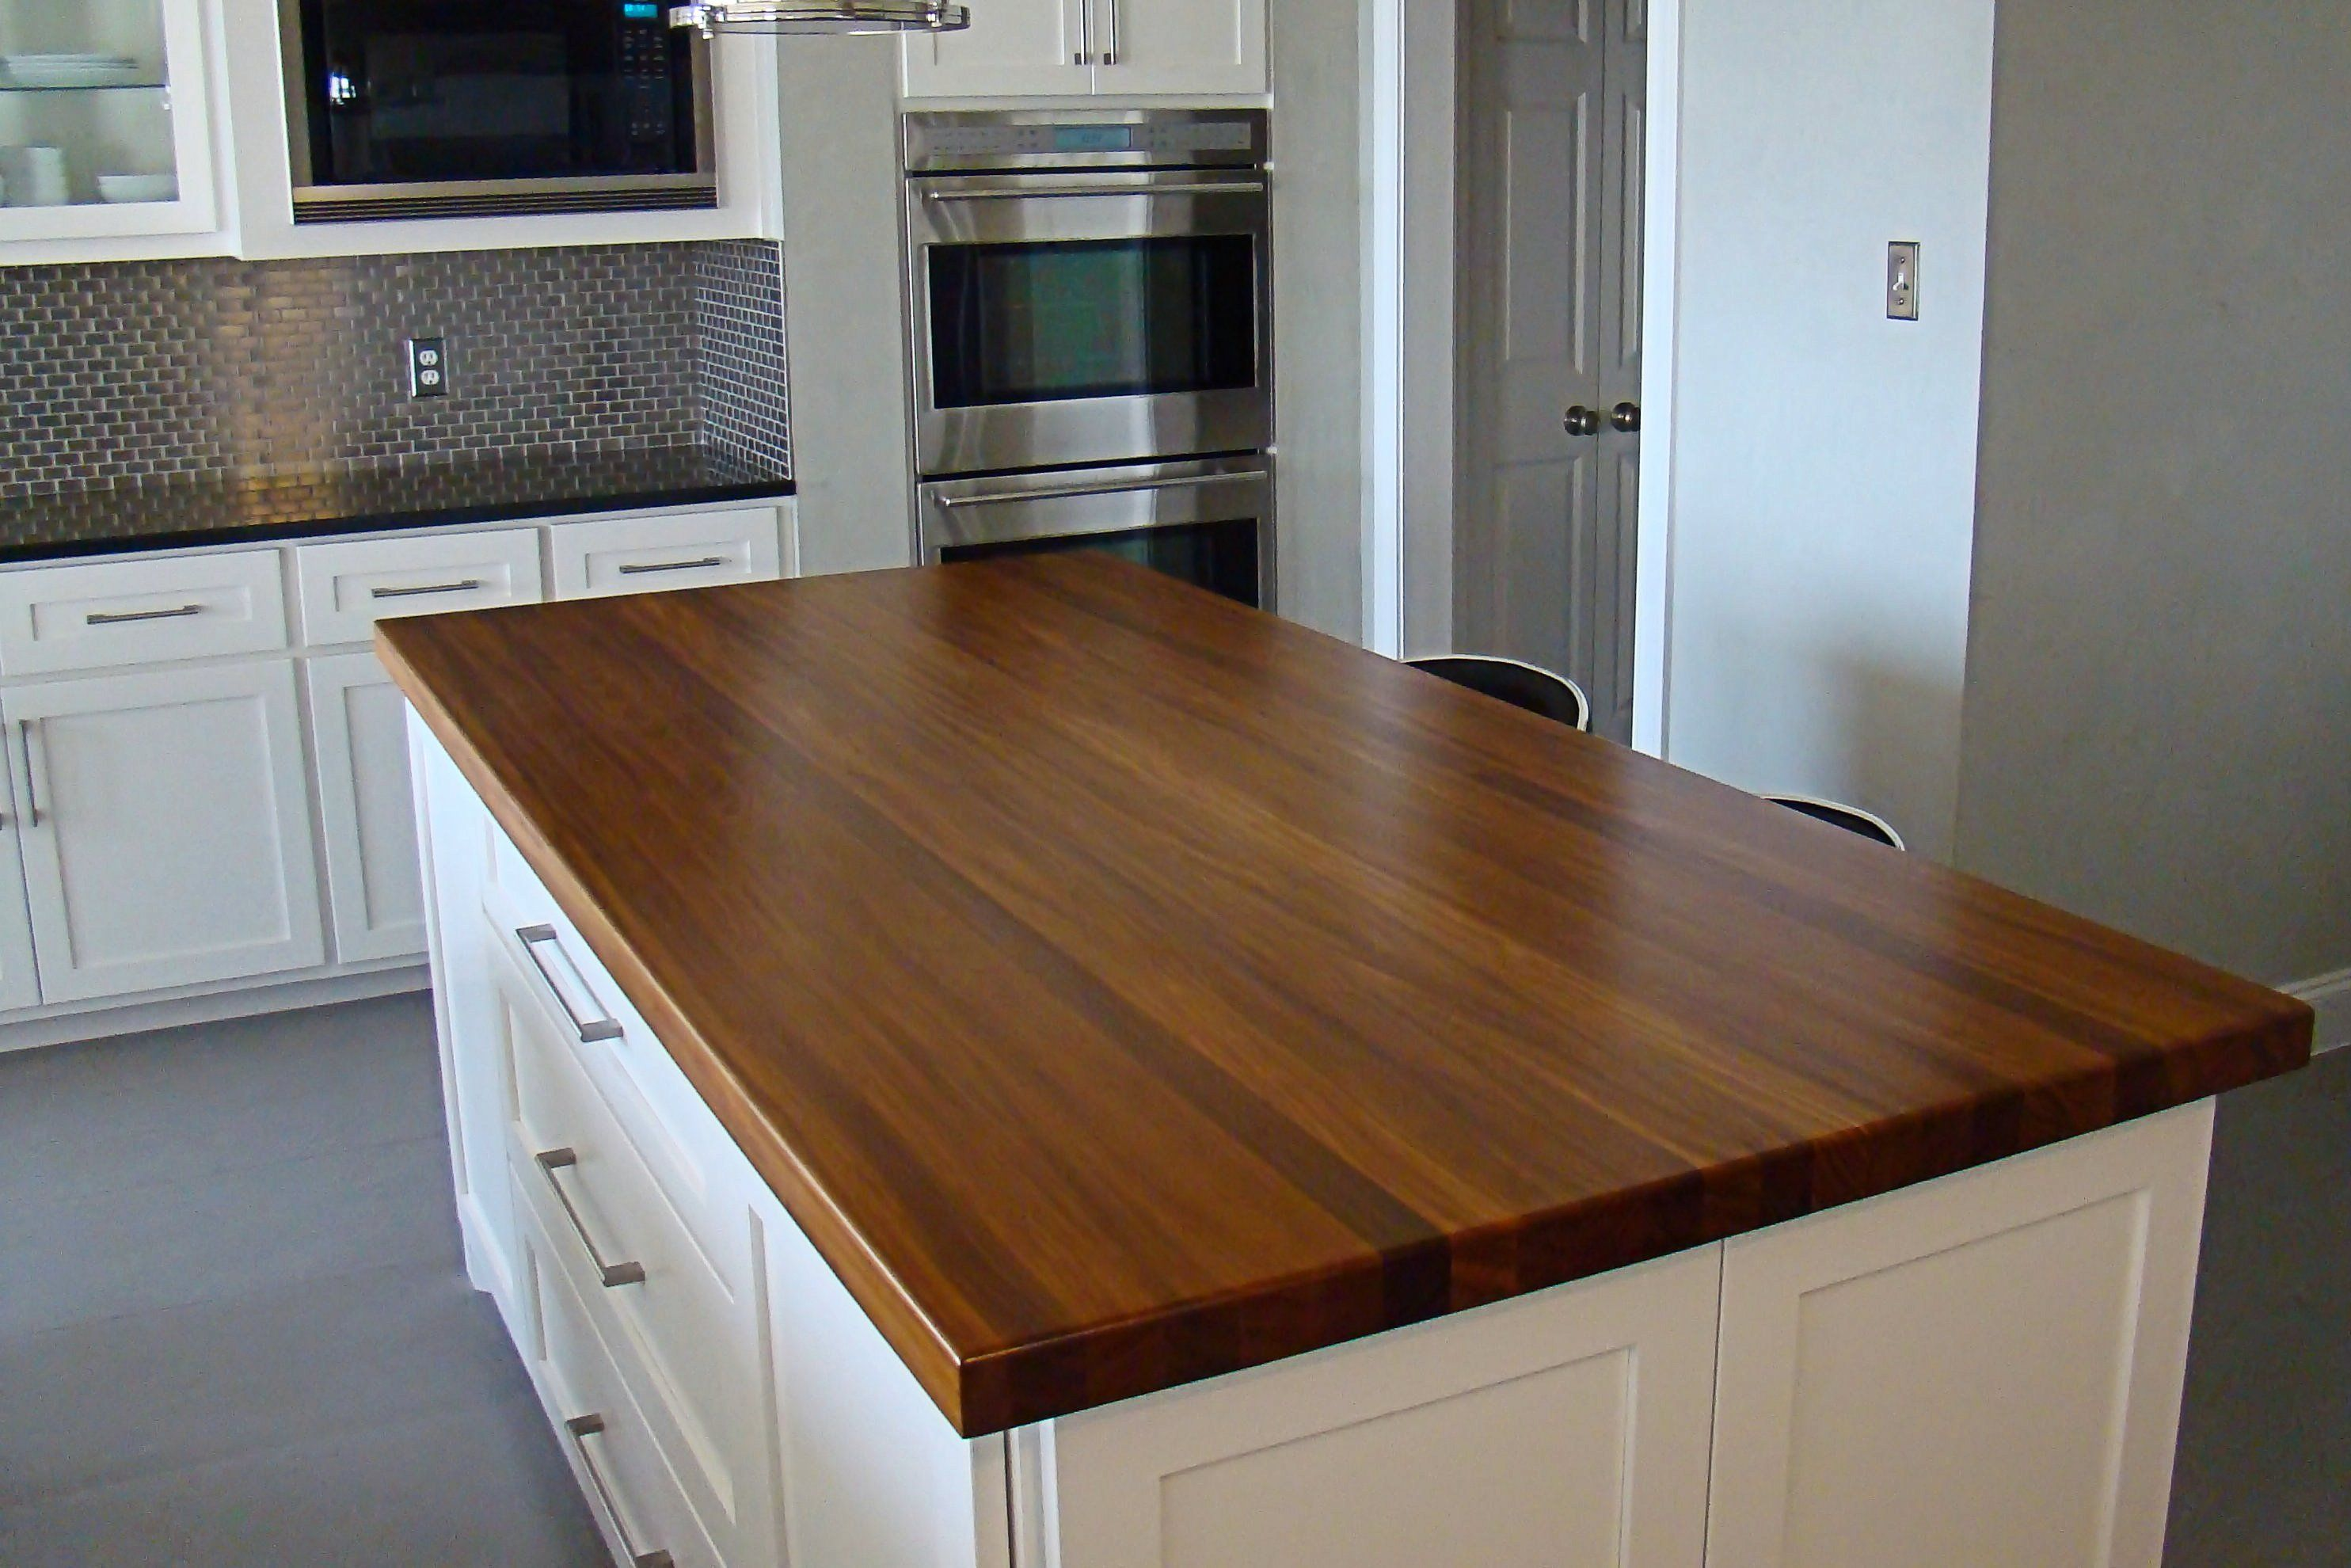 Best Finish For Wood Kitchen Countertop